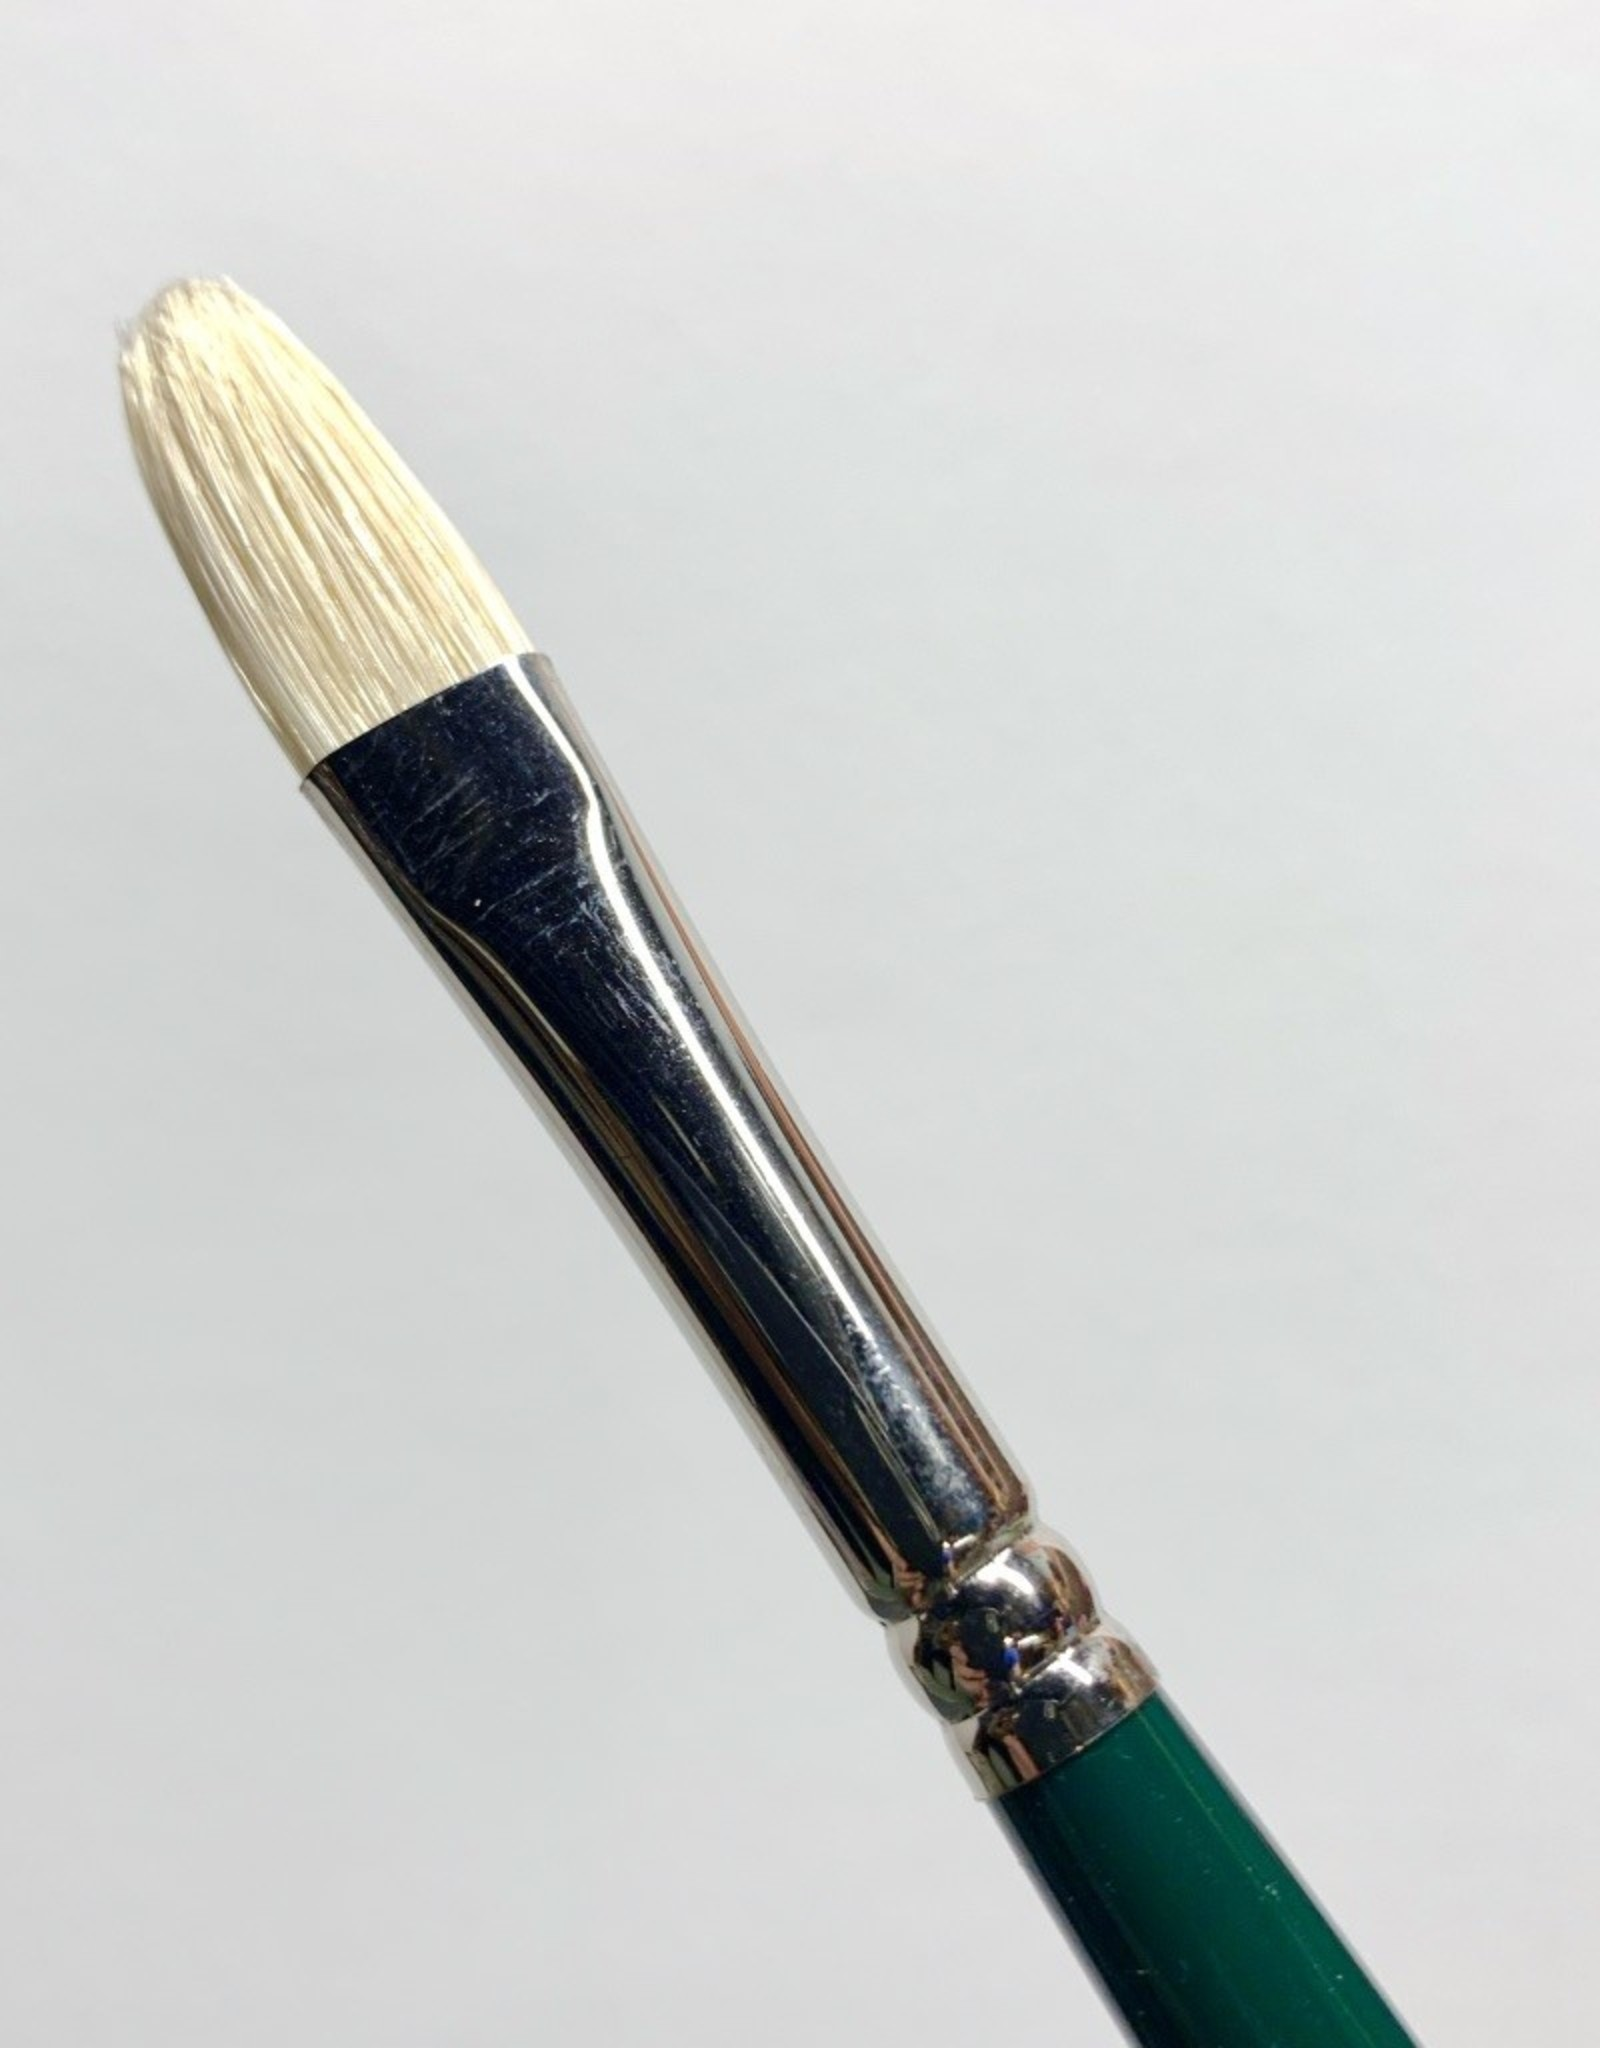 Winsor & Newton Brush, Filbert 6, Hog Hair for Oil or Acrylic Paint Bristle